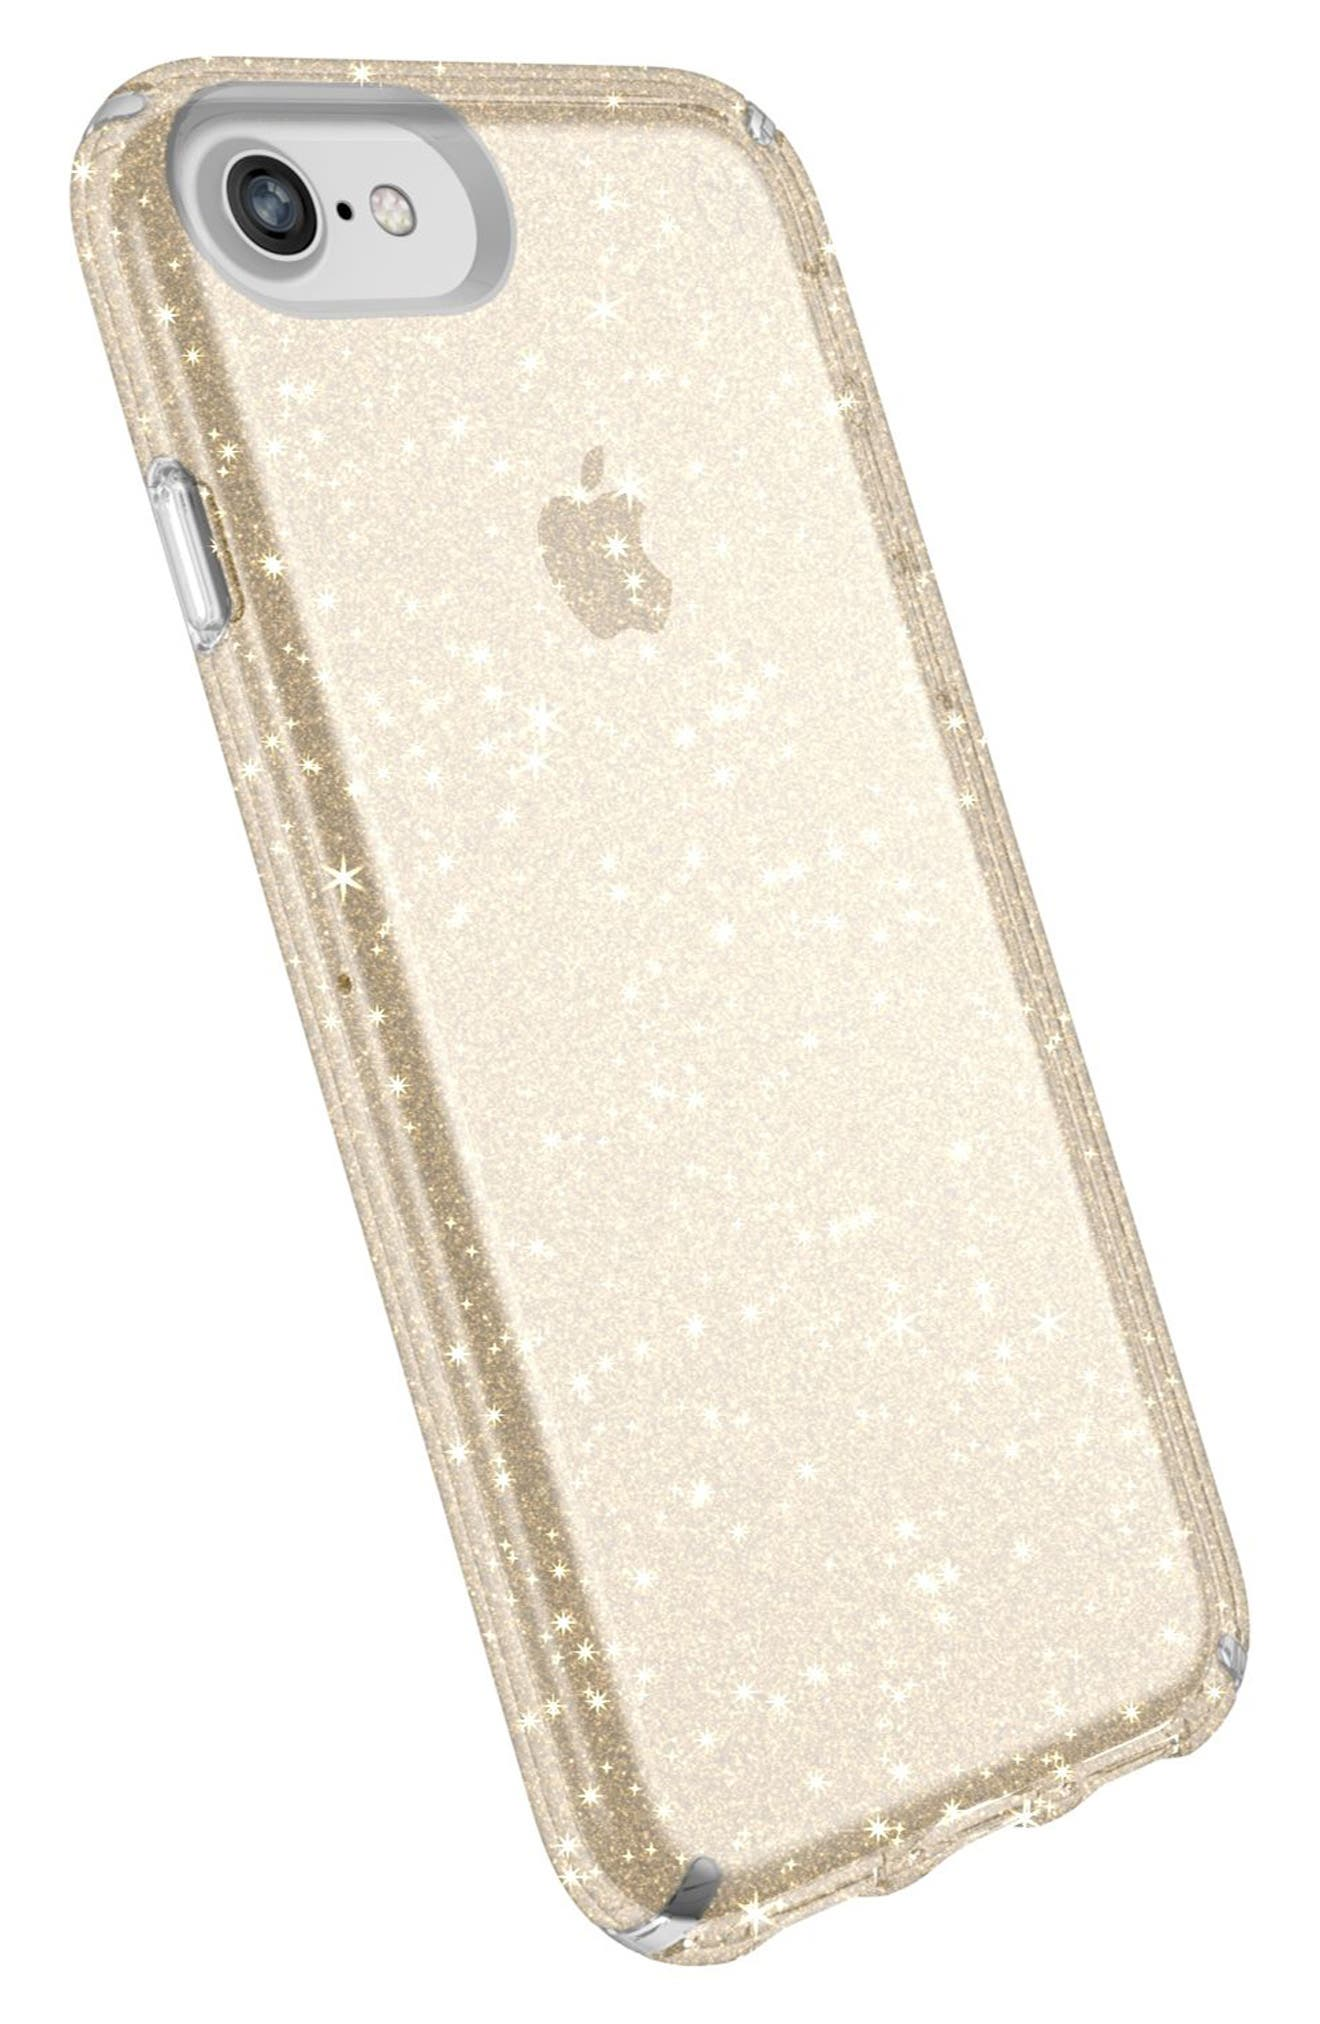 iPhone 6/6s/7/8 Case,                             Alternate thumbnail 4, color,                             Clear With Gold Glitter/ Clear